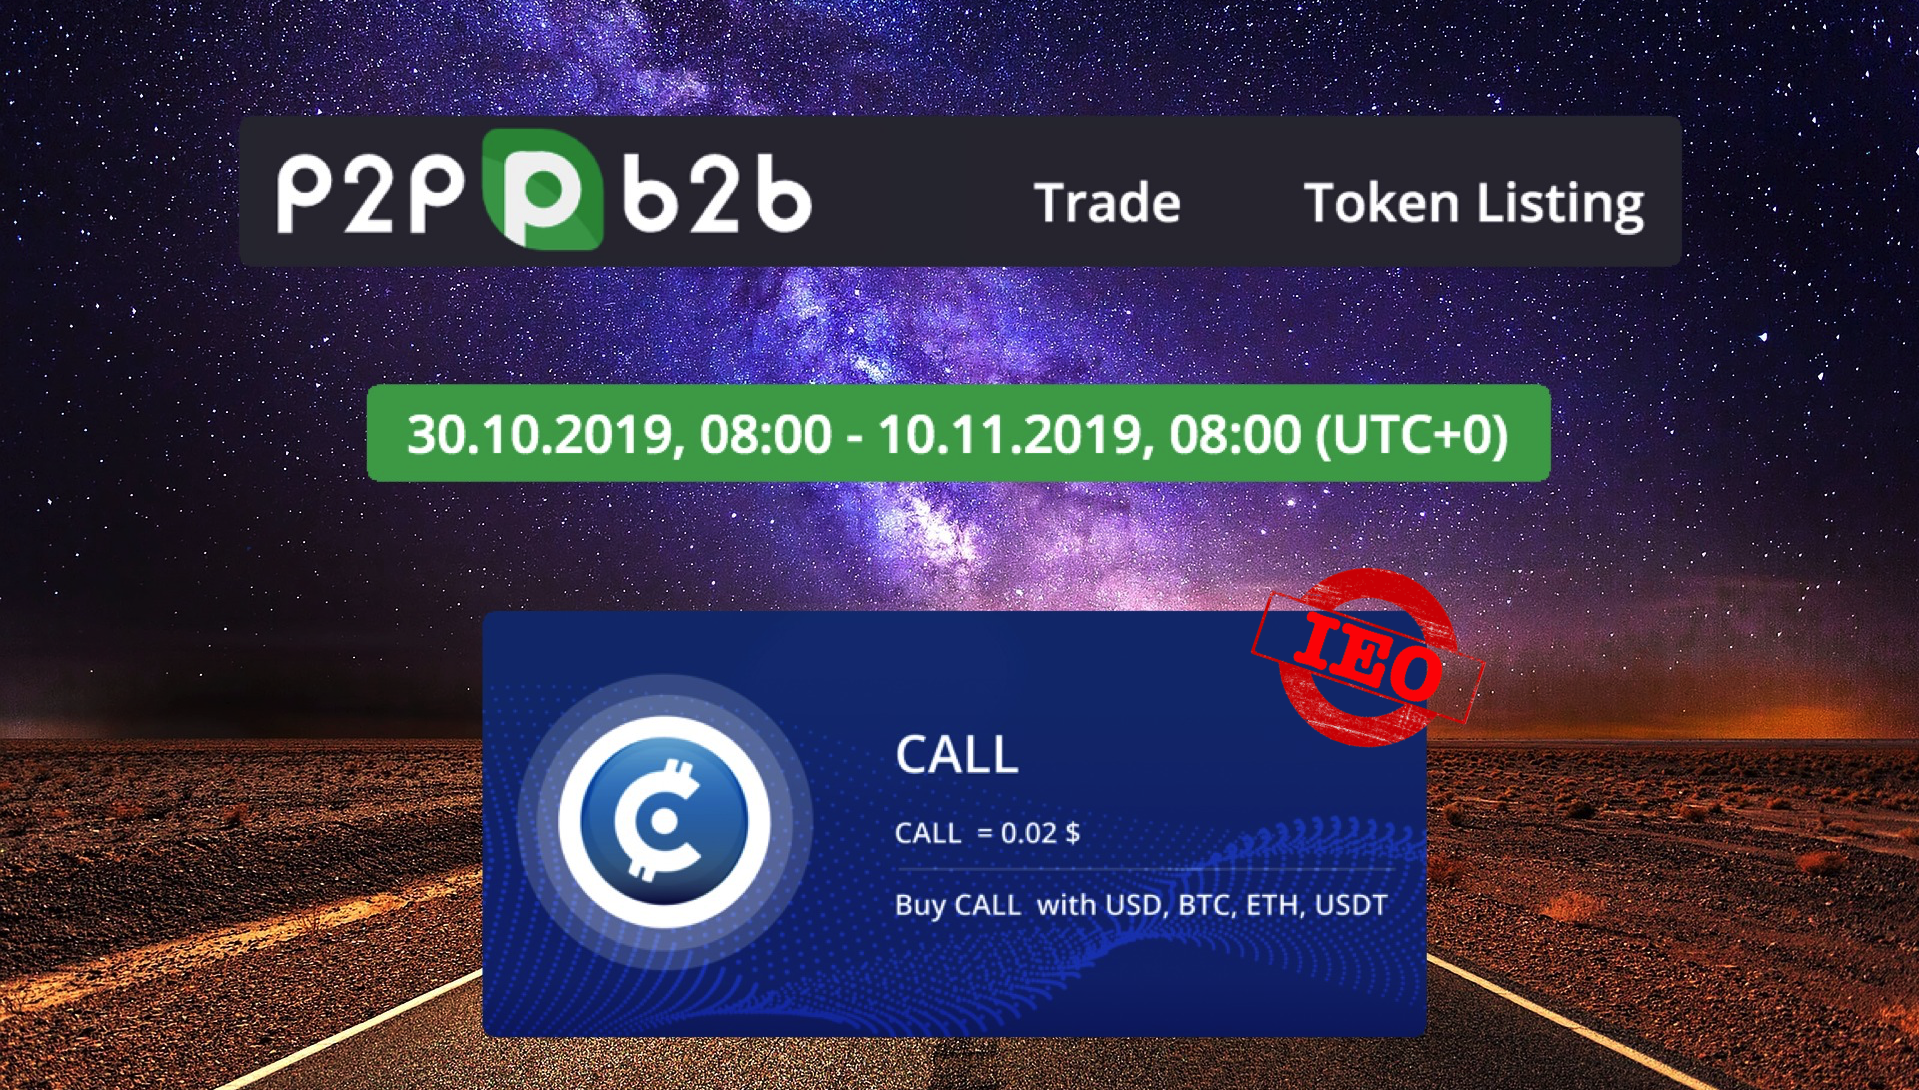 p2pb2b cryptocurrency exchange